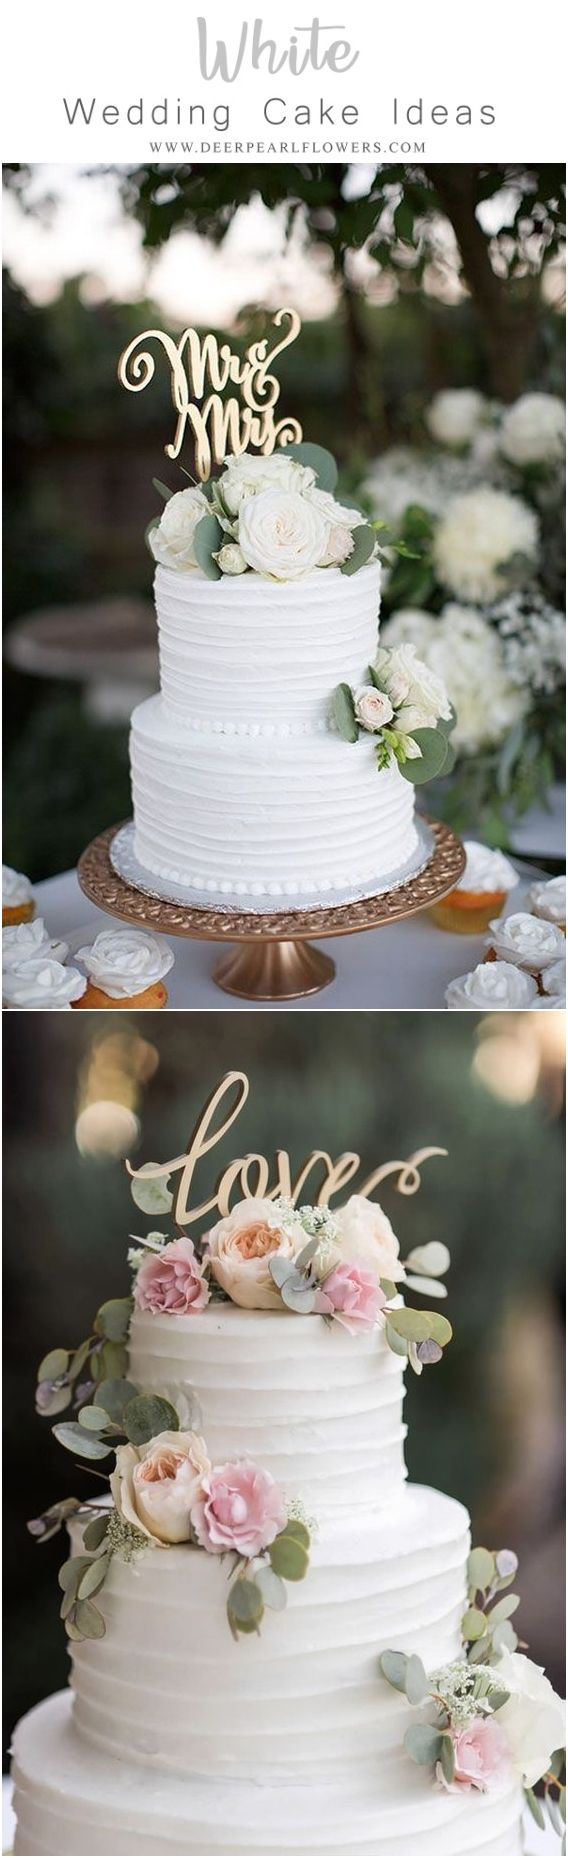 Elegant White Wedding Cake Ideas Wedding Cake Trends And Ideas Weddings Cakes Wedding Romantic Wedding Cake Wedding Cakes With Cupcakes Wedding Day Wishes